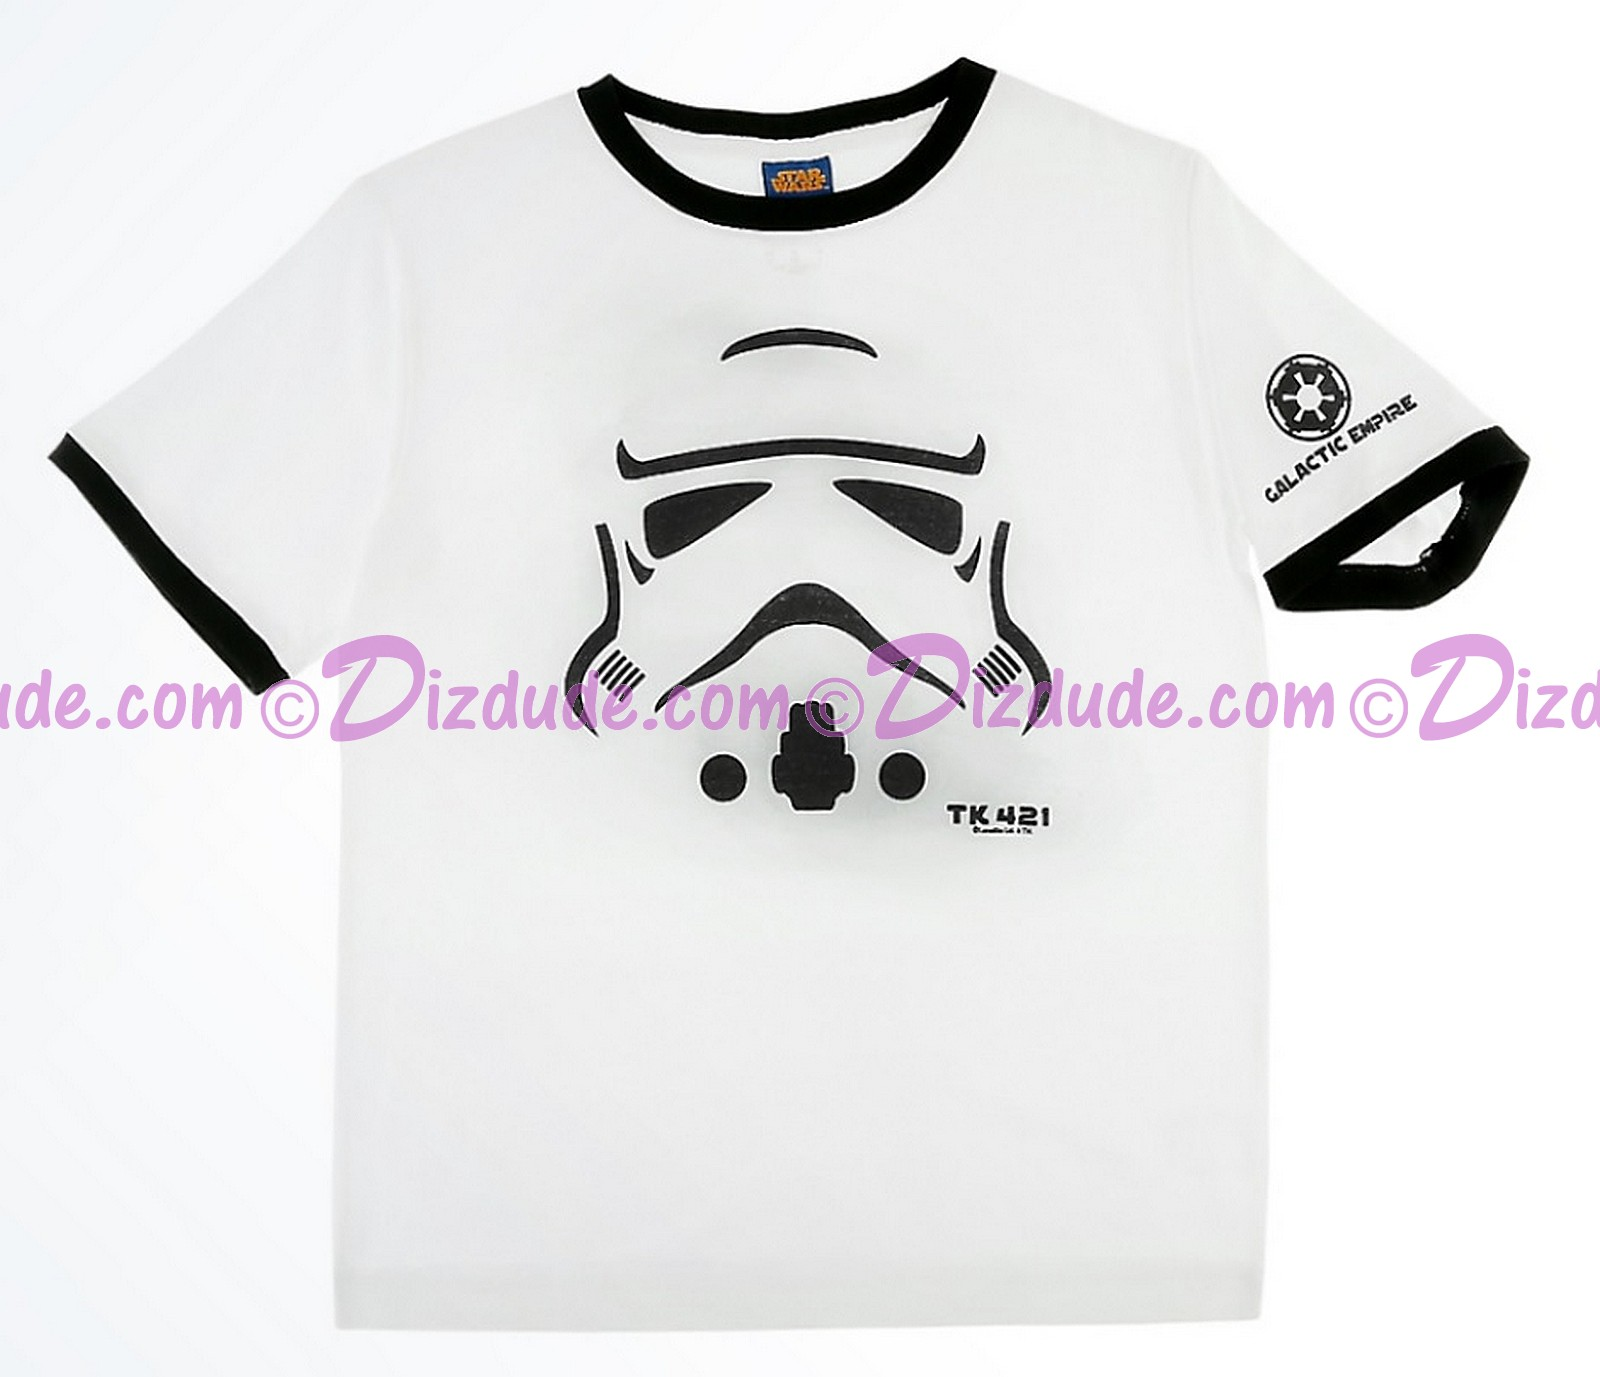 Star Wars Disney Stormtrooper TK 421 Youth T-Shirt (Tshirt, T shirt or Tee) © Dizdude.com